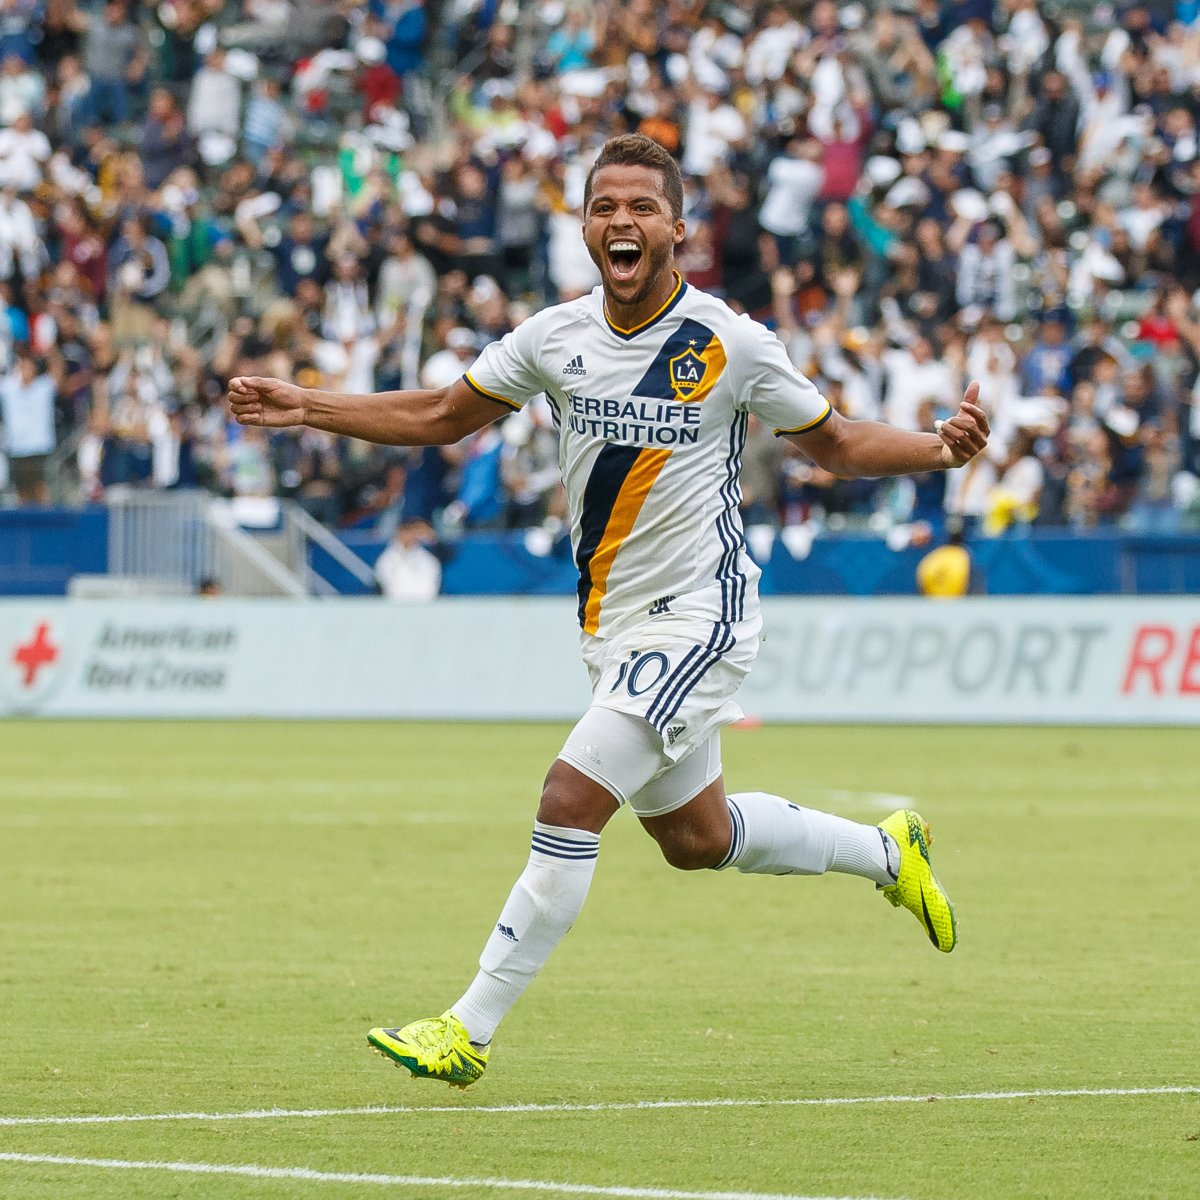 Galaxy soccer player celebrating on the field